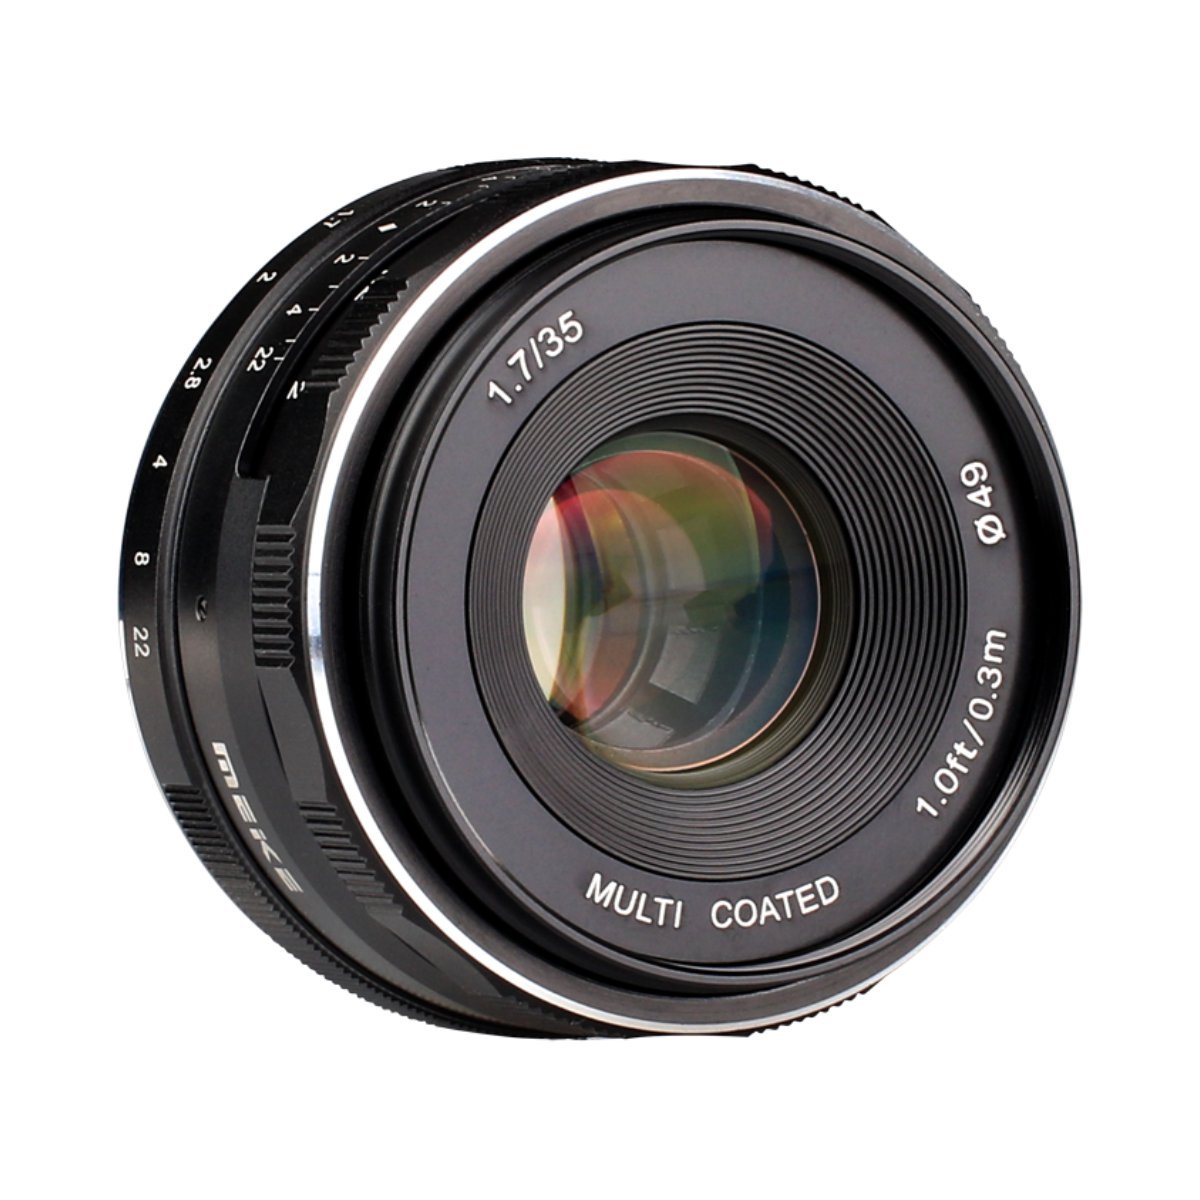 Meike 35mm f/1.7 Manual Focus Fixed Lens for Fujifilm FX Mount Digital Cameras ( X-A1/A2,X-e1/e2/e2s,X-M1,X-T1/T10,X-pro1/pro2 etc) by Meike